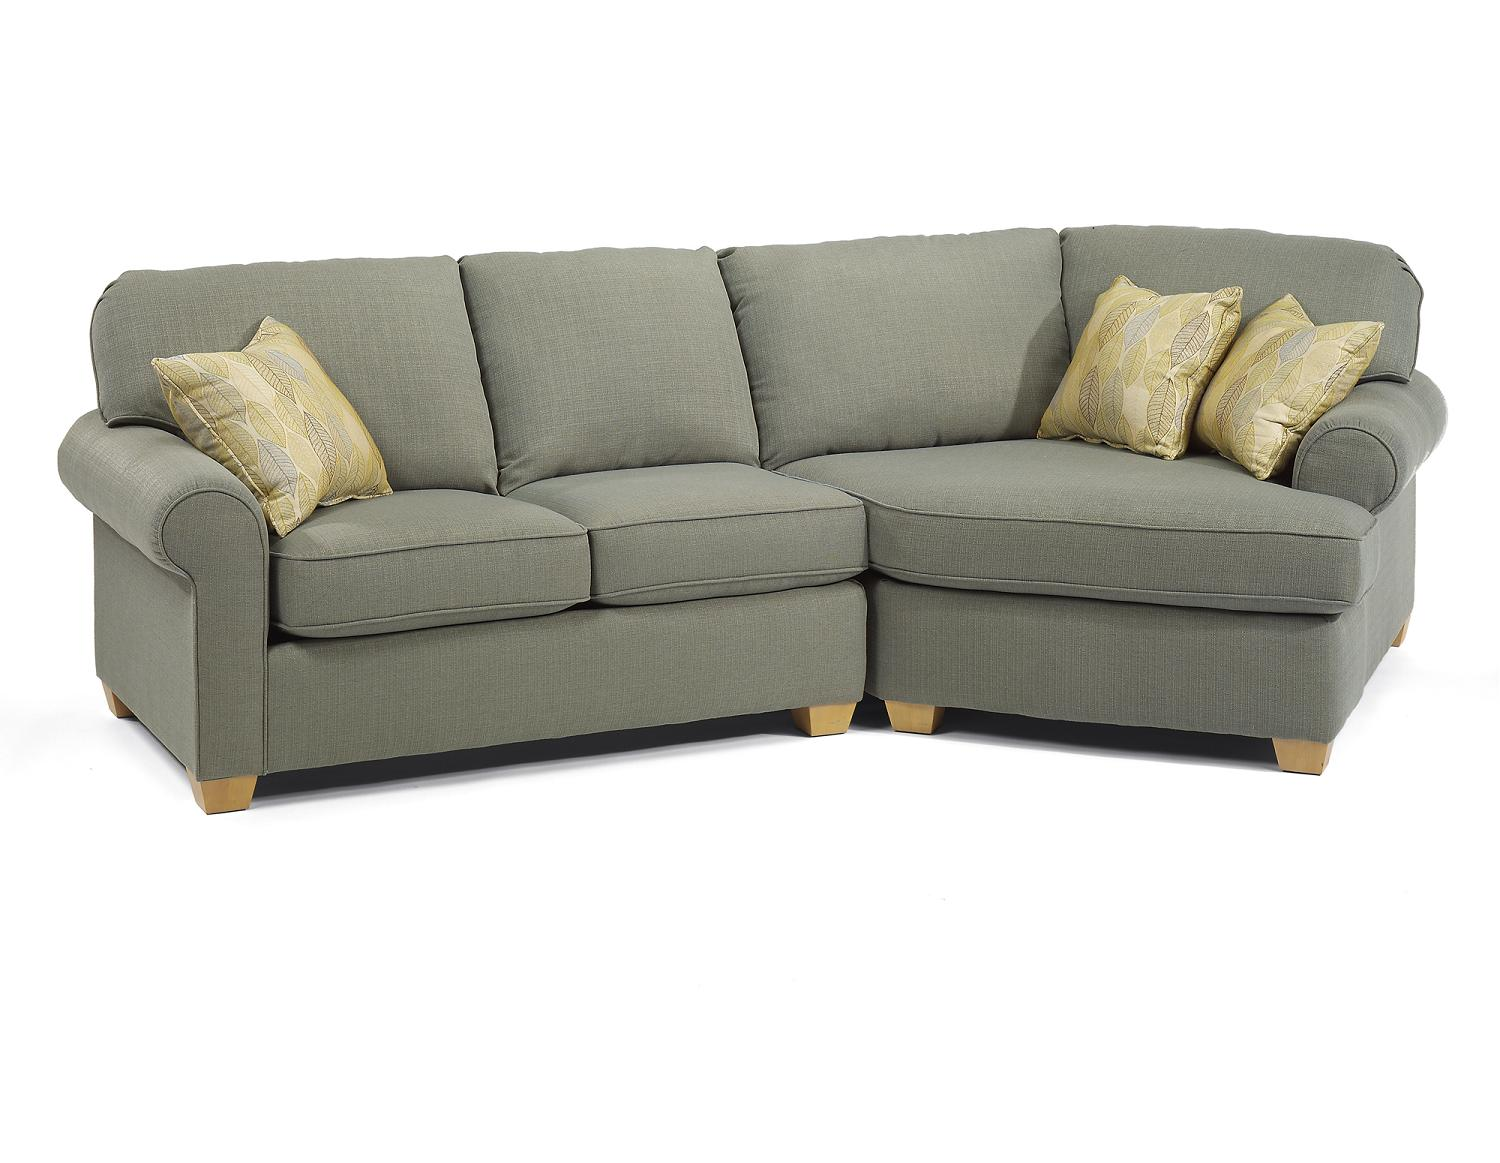 cheap sectional sofas with chaise lounge